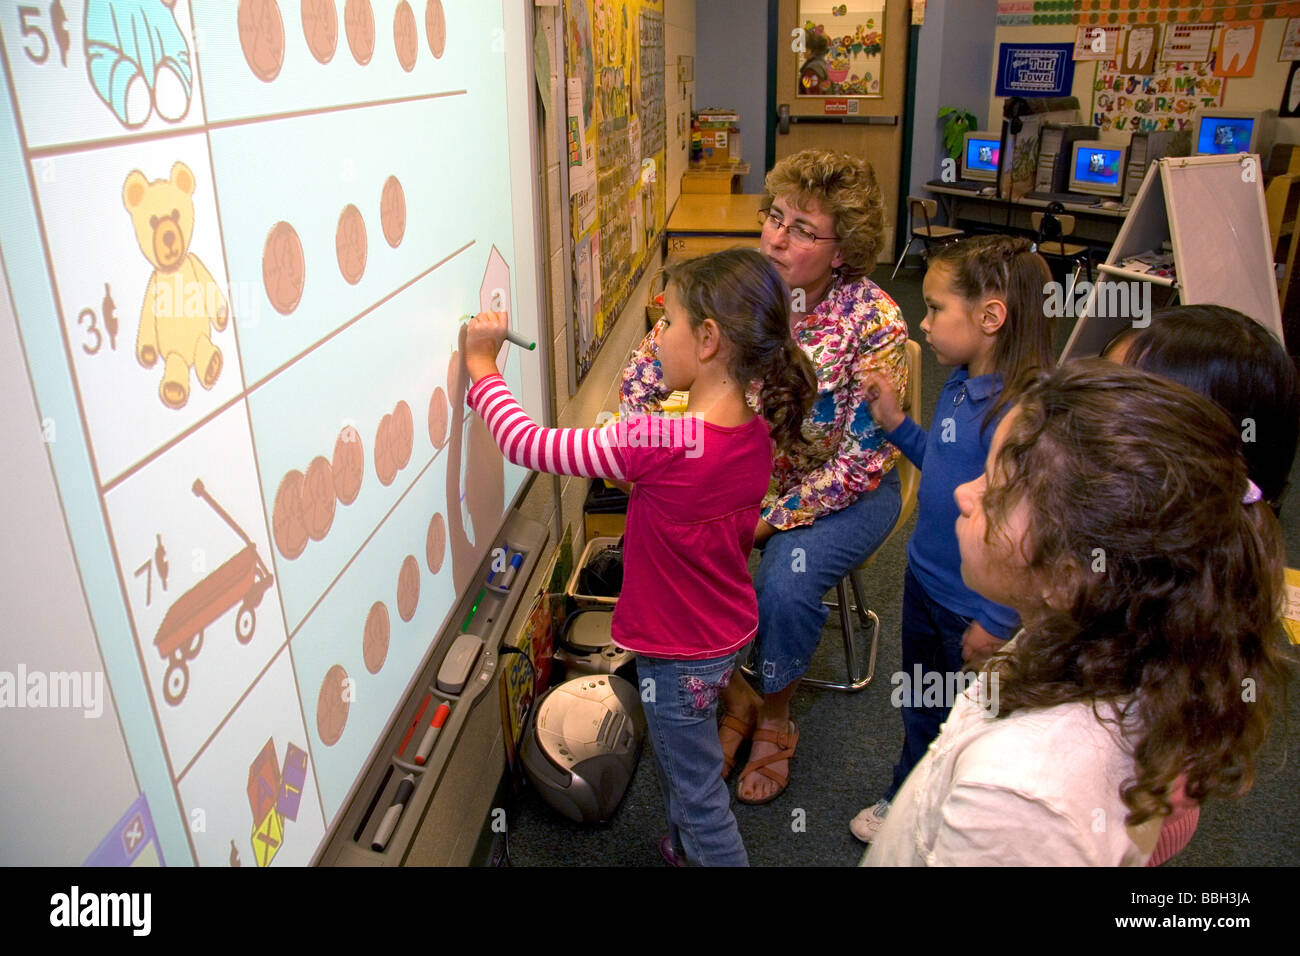 Kindergarten Calendar Interactive Whiteboard : Kindergarten students use an interactive whiteboard in the